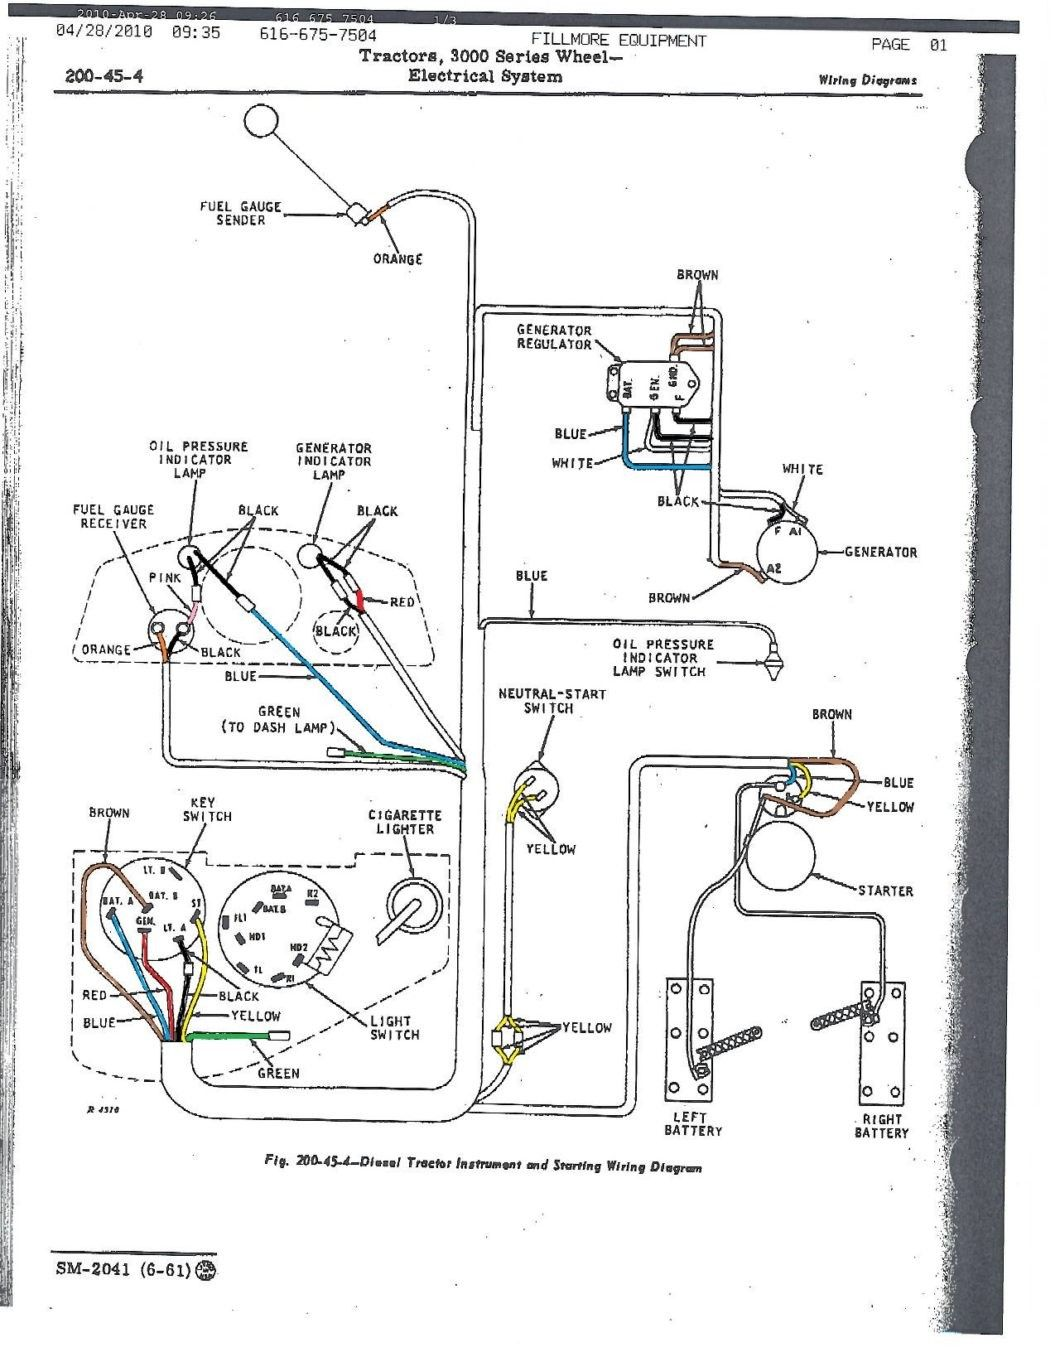 Pin On Wiring Diagrams Paint Colors Worksheets Cv